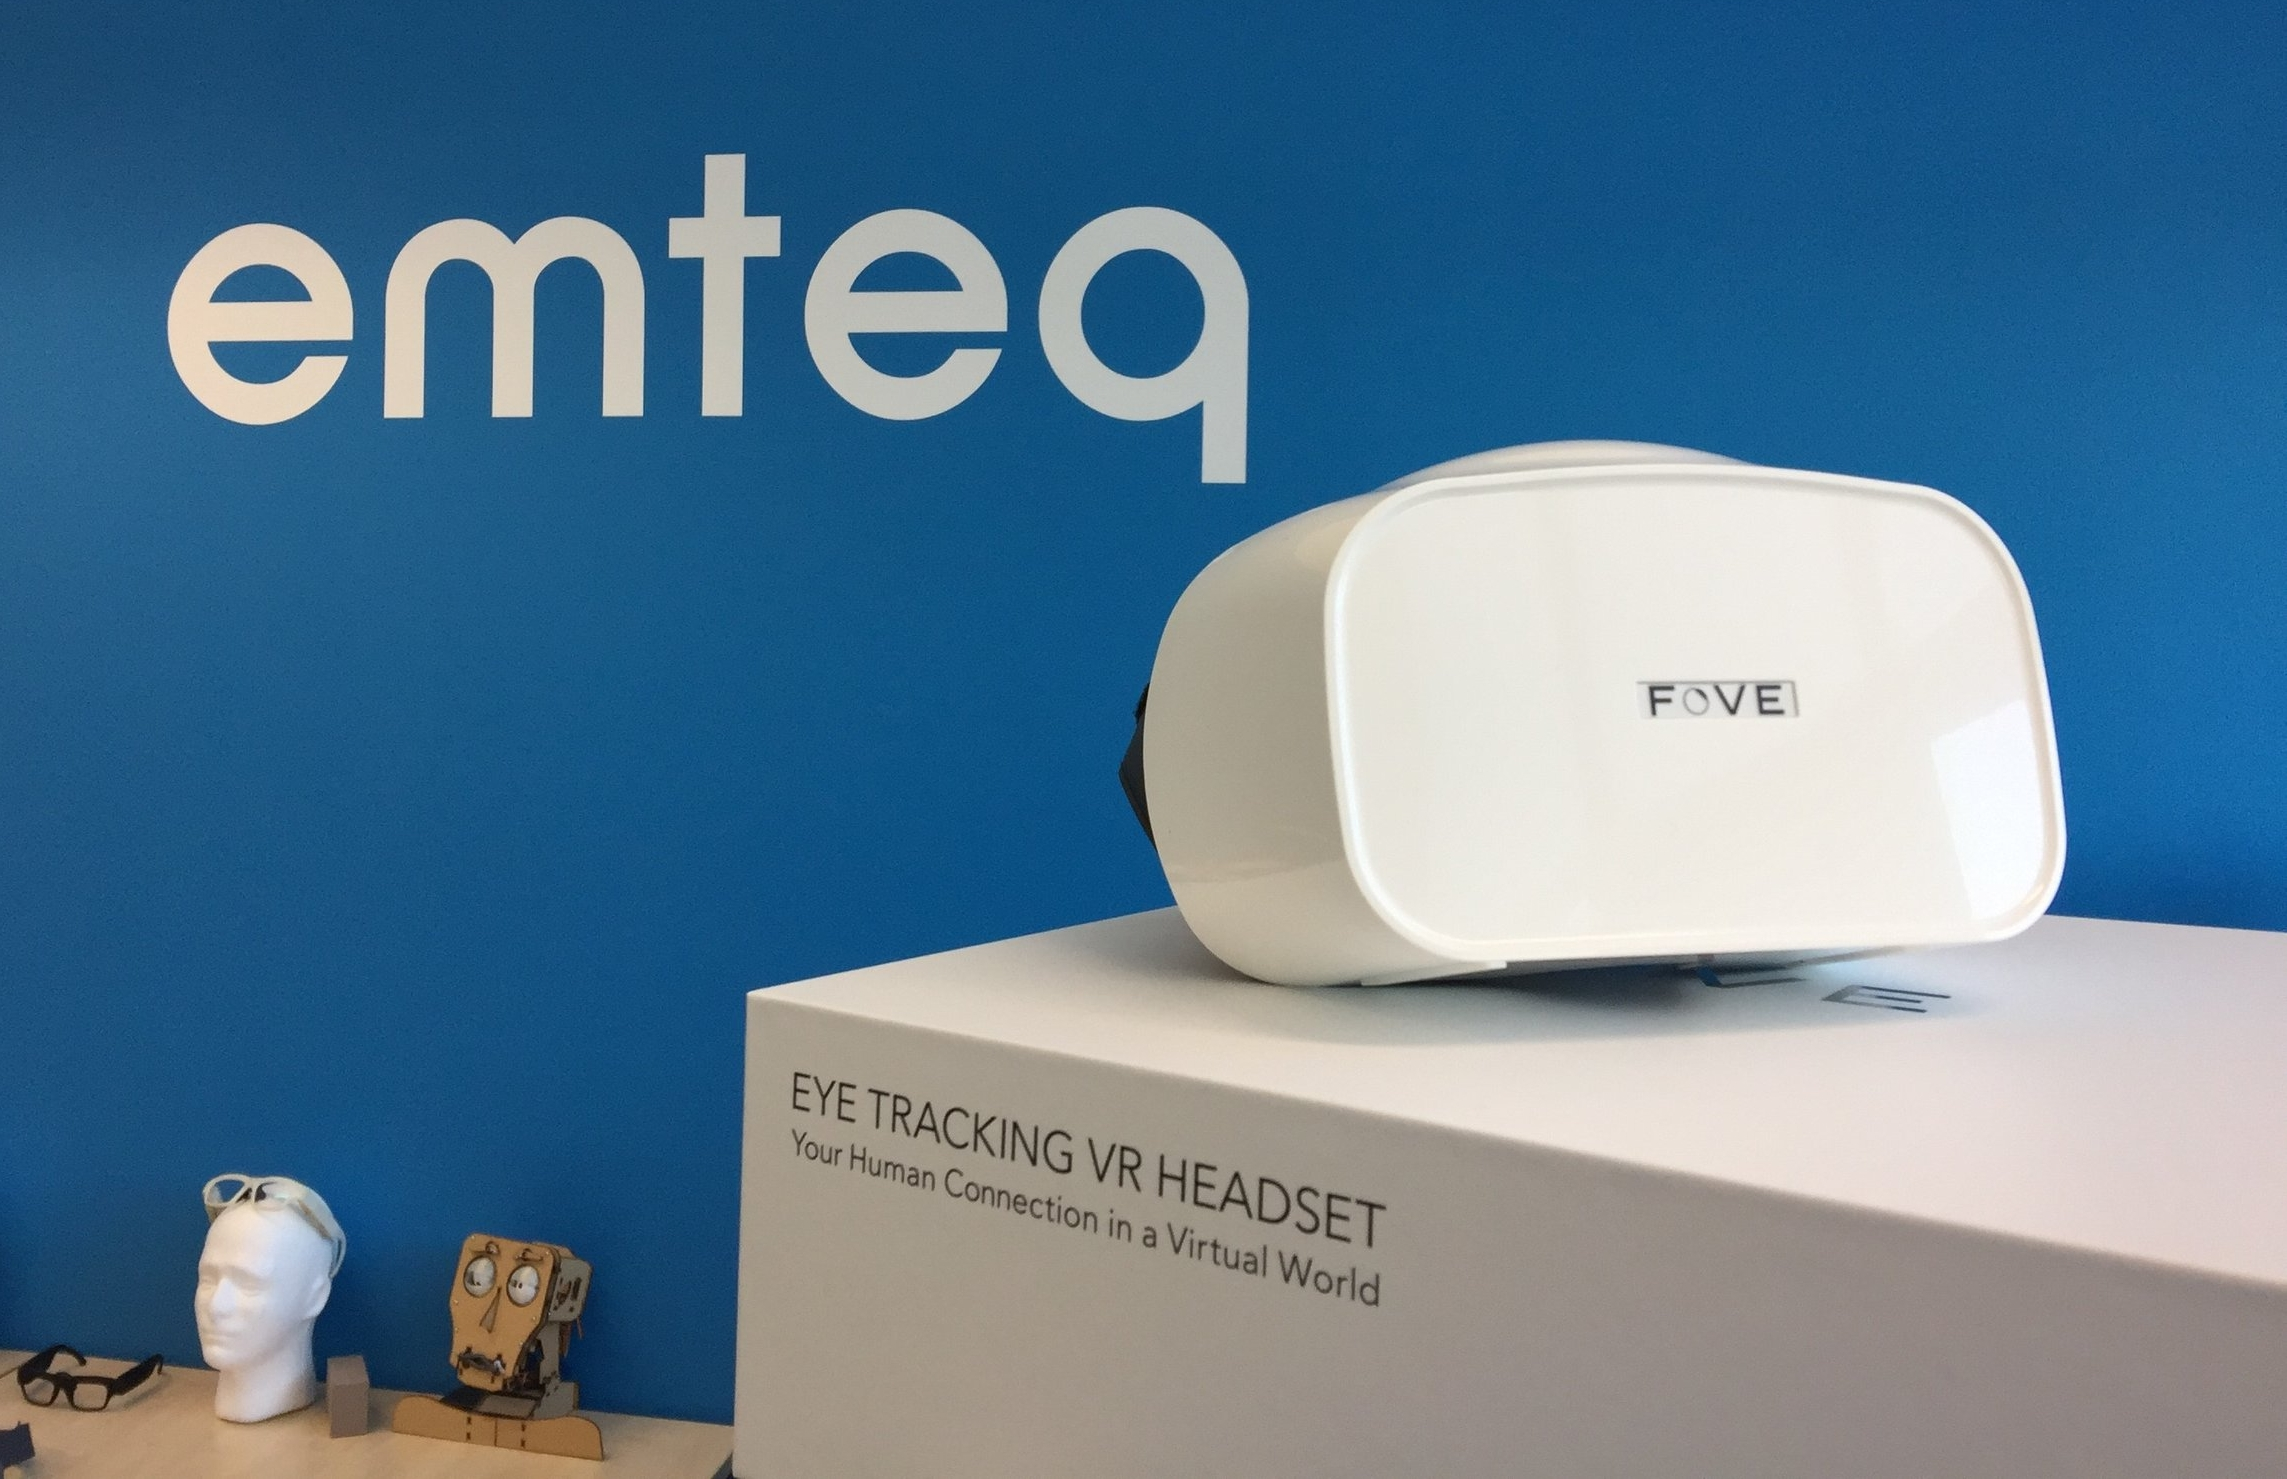 Emteq can't wait to integrate facial tracking into the Fove